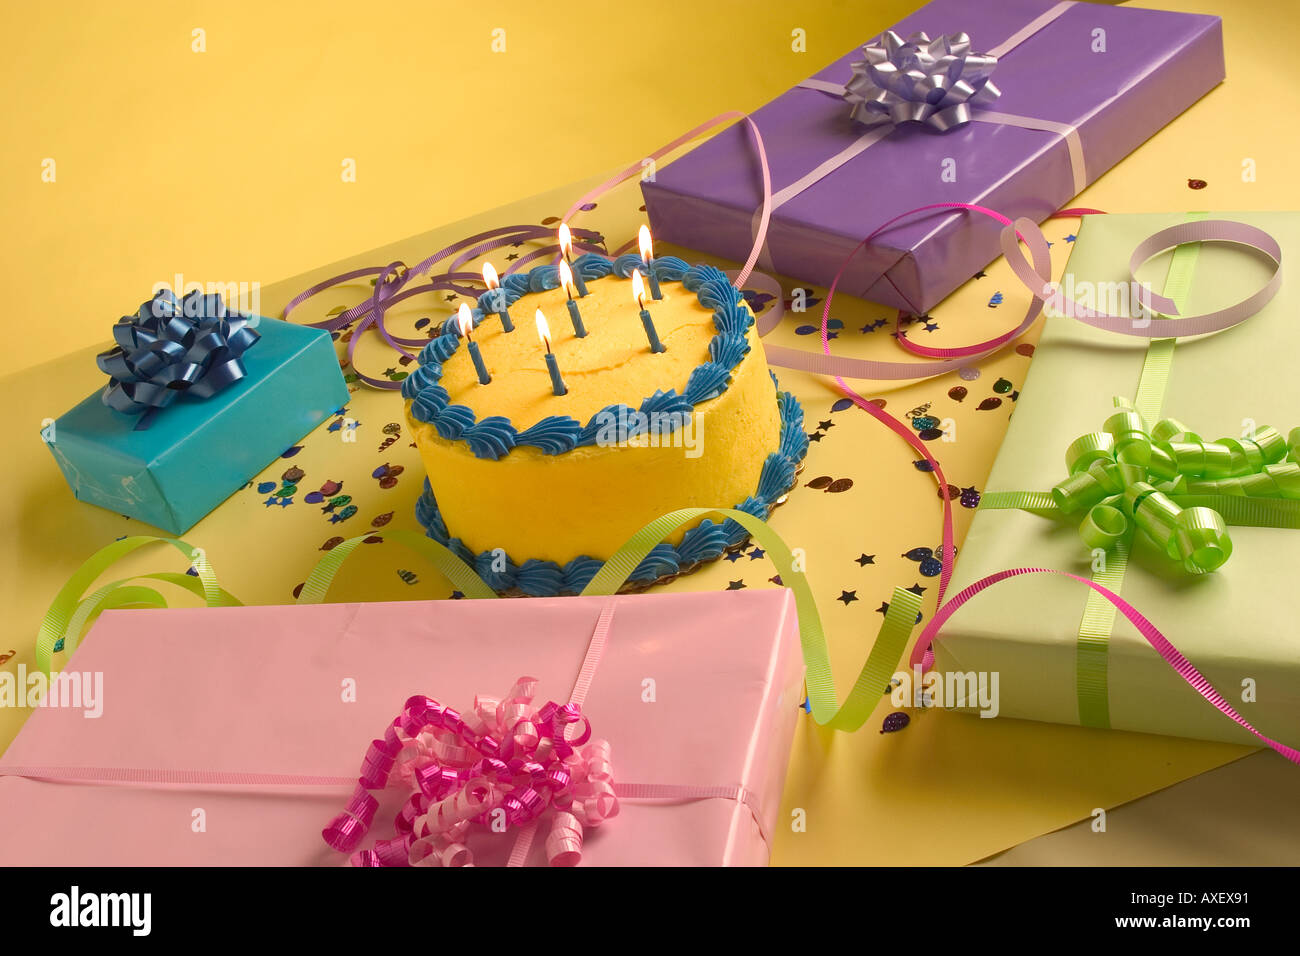 Swell Birthday Cake With Presents And Confetti Stock Photo 5493392 Alamy Funny Birthday Cards Online Sheoxdamsfinfo